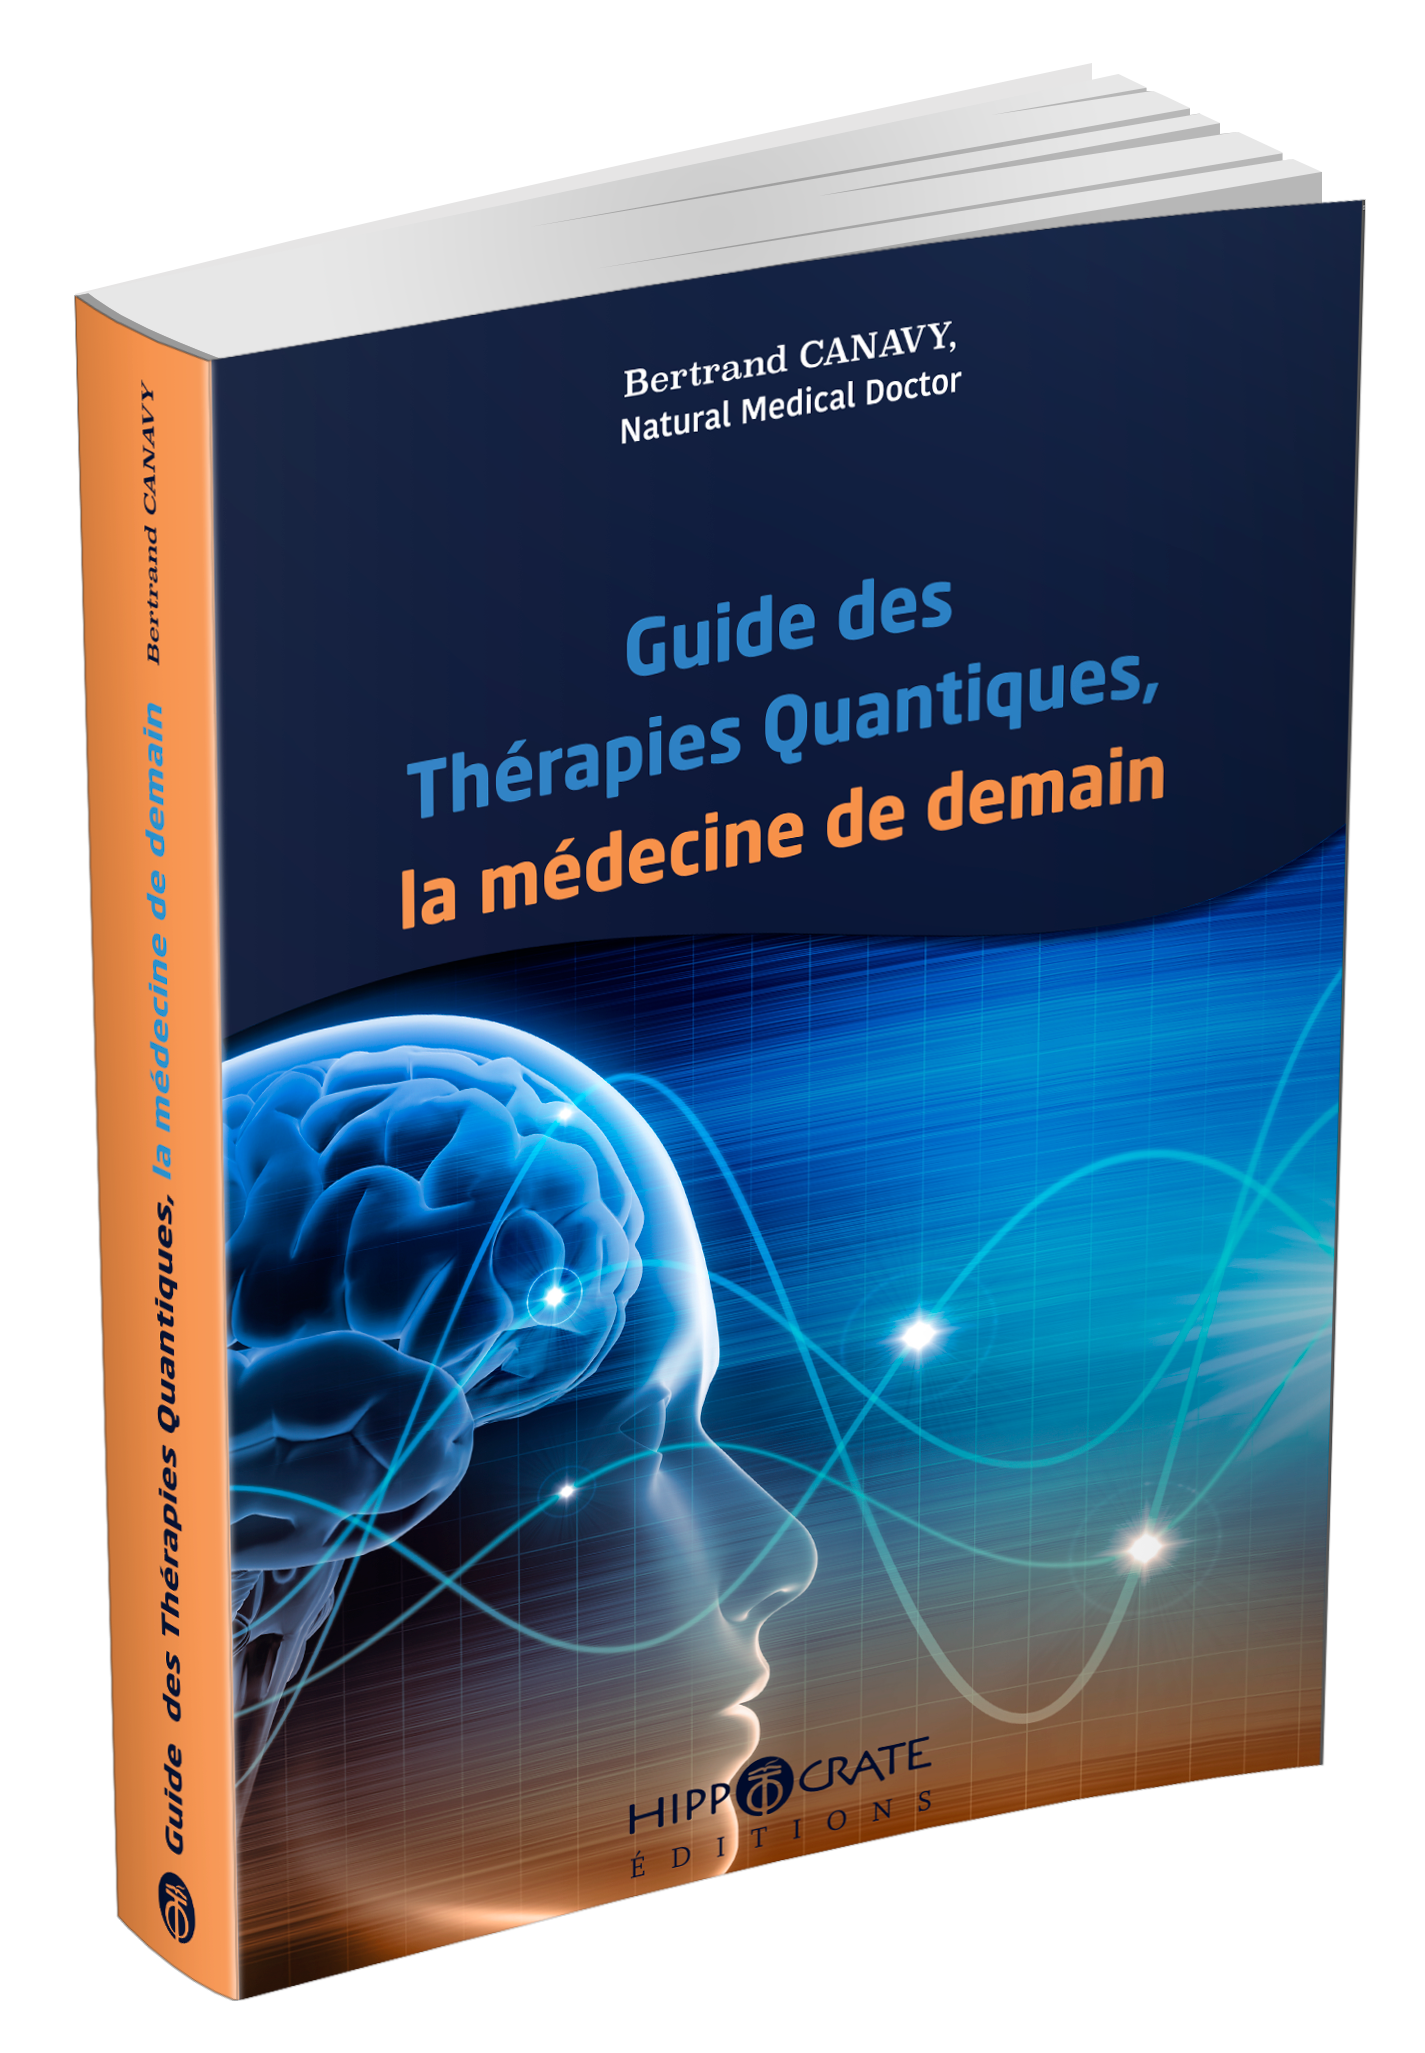 Bertrand Canavy - Guide des therapies quantiques